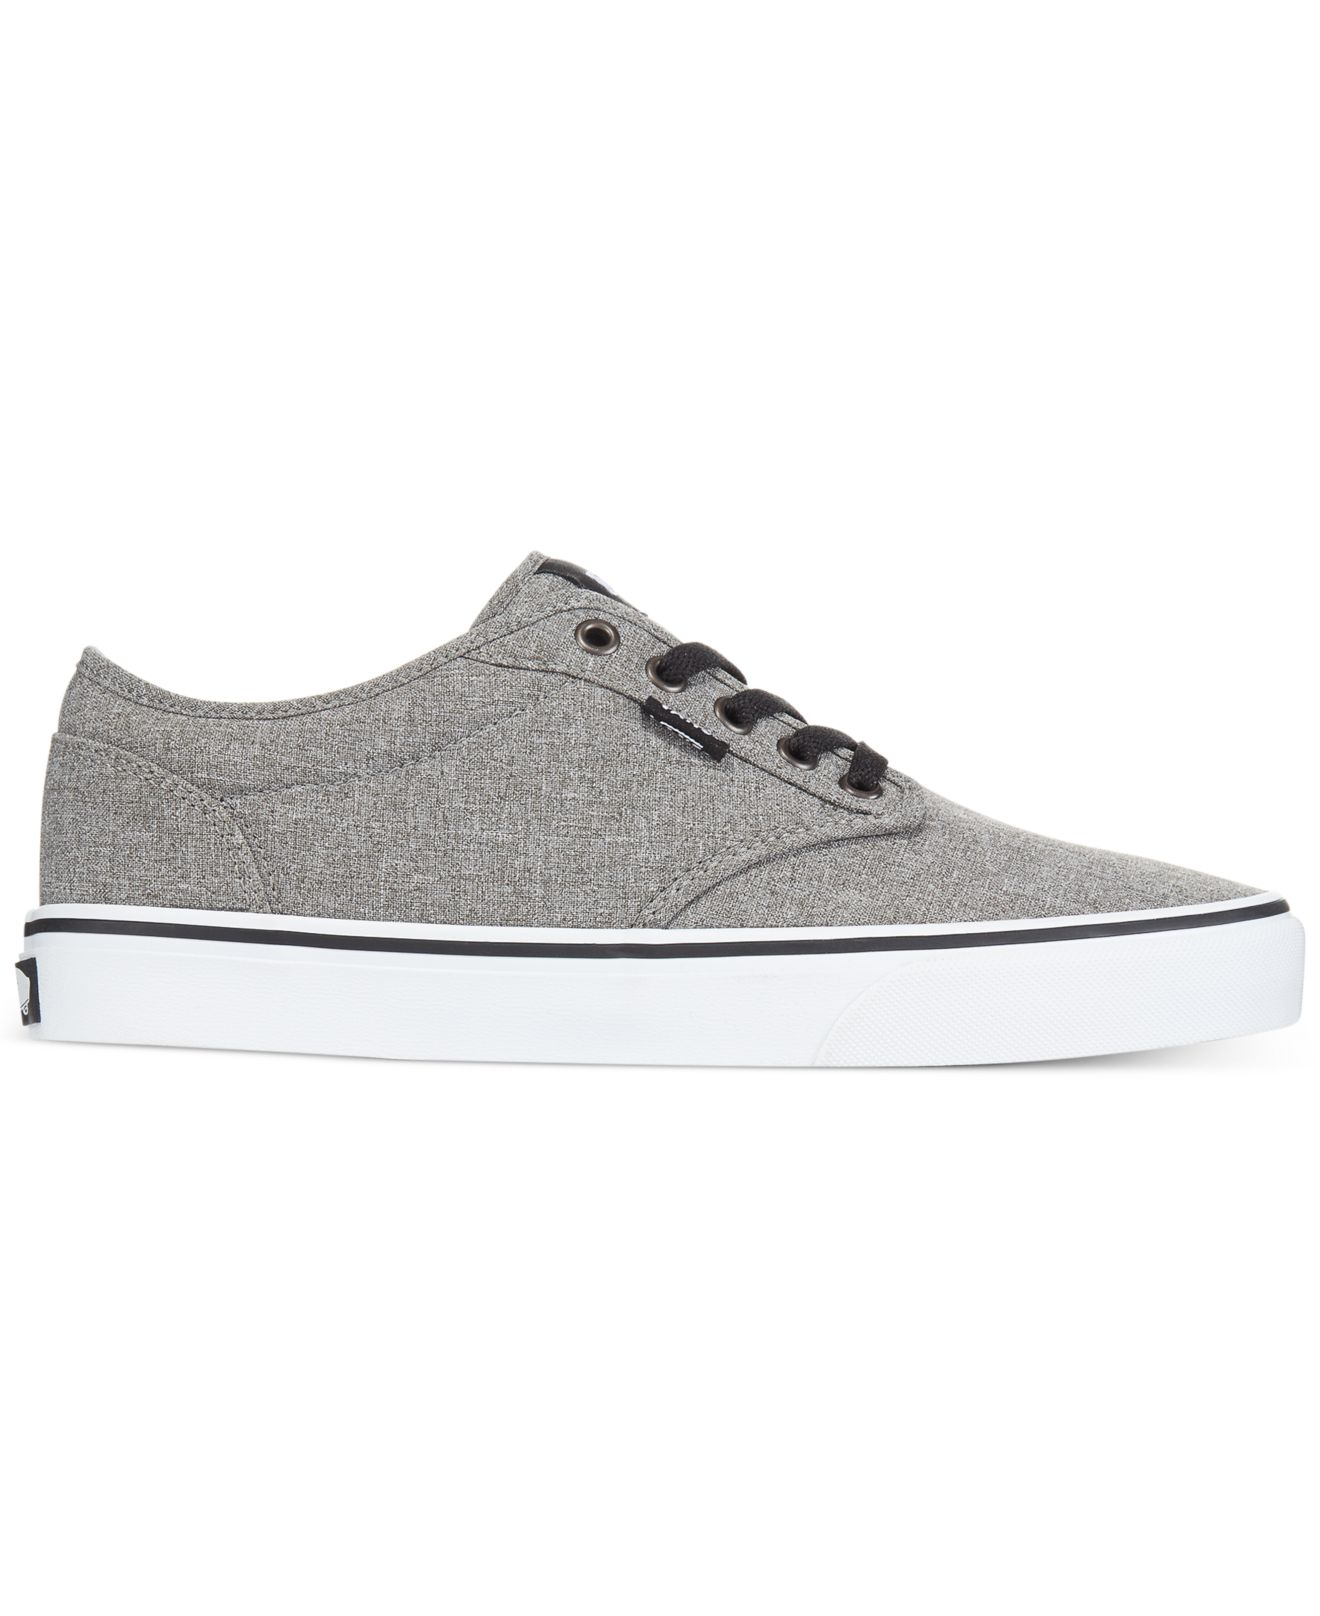 a6fd26d473 Lyst - Vans Men s Atwood Heathered Sneakers in Gray for Men